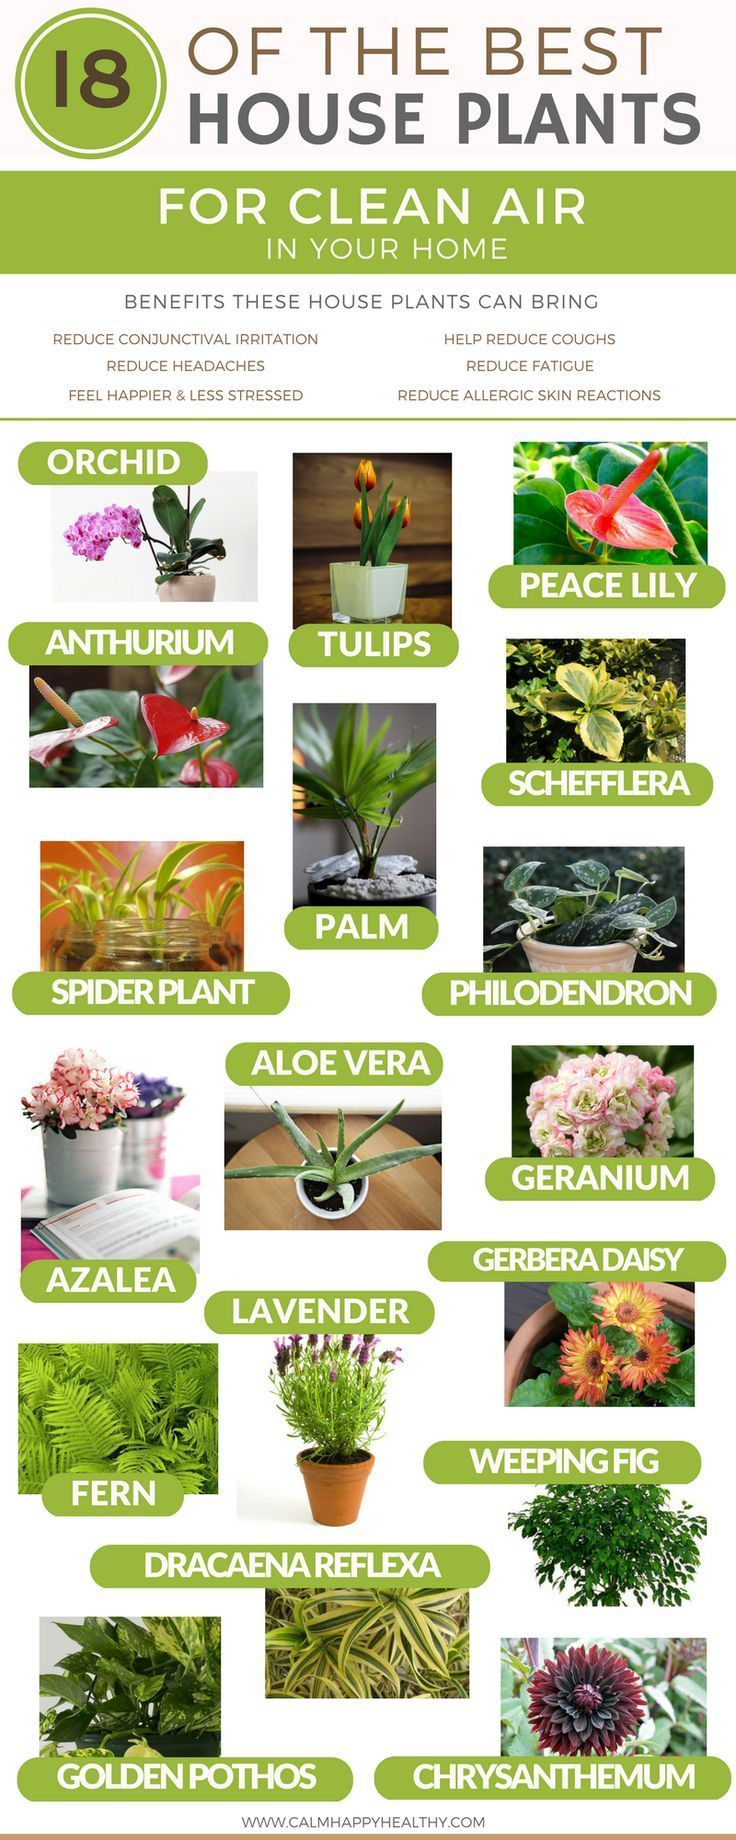 of the best indoor house plants to help purify the air & detox your home We look into the 18 best indoor house plants to help purify the air and detox your home.We look into the 18 best indoor house plants to help purify the air and detox your home. Best Indoor Plants, Air Plants, Garden Plants, Indoor House Plants, Indoor Plants Clean Air, House Plants Air Purifying, Flowering House Plants, Indoor Cats, Indoor Herbs